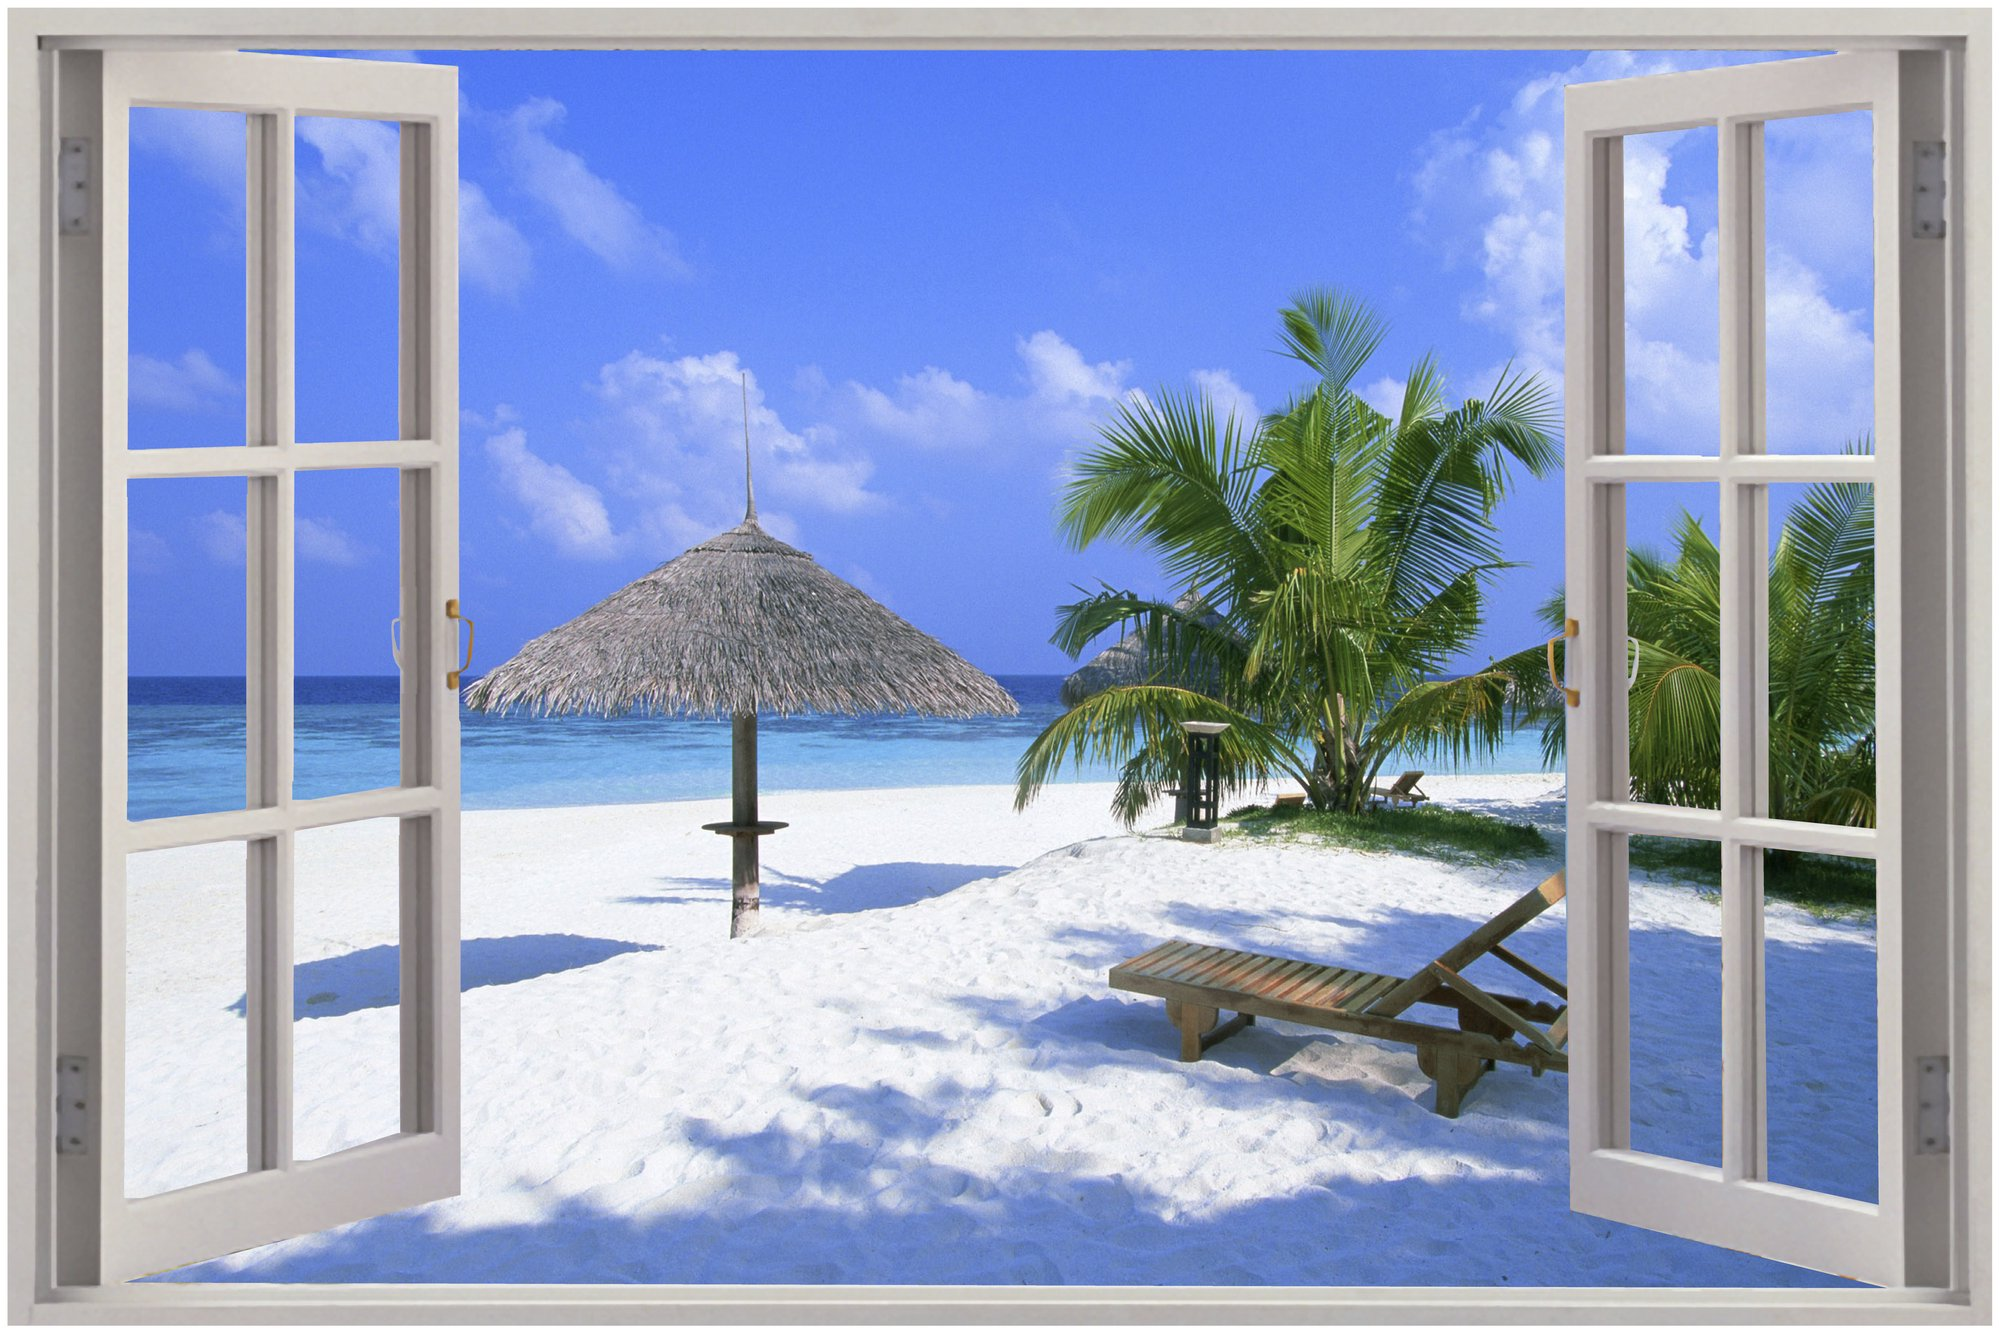 murals windows views wall murals you ll love window views kitchen backsplash tile murals